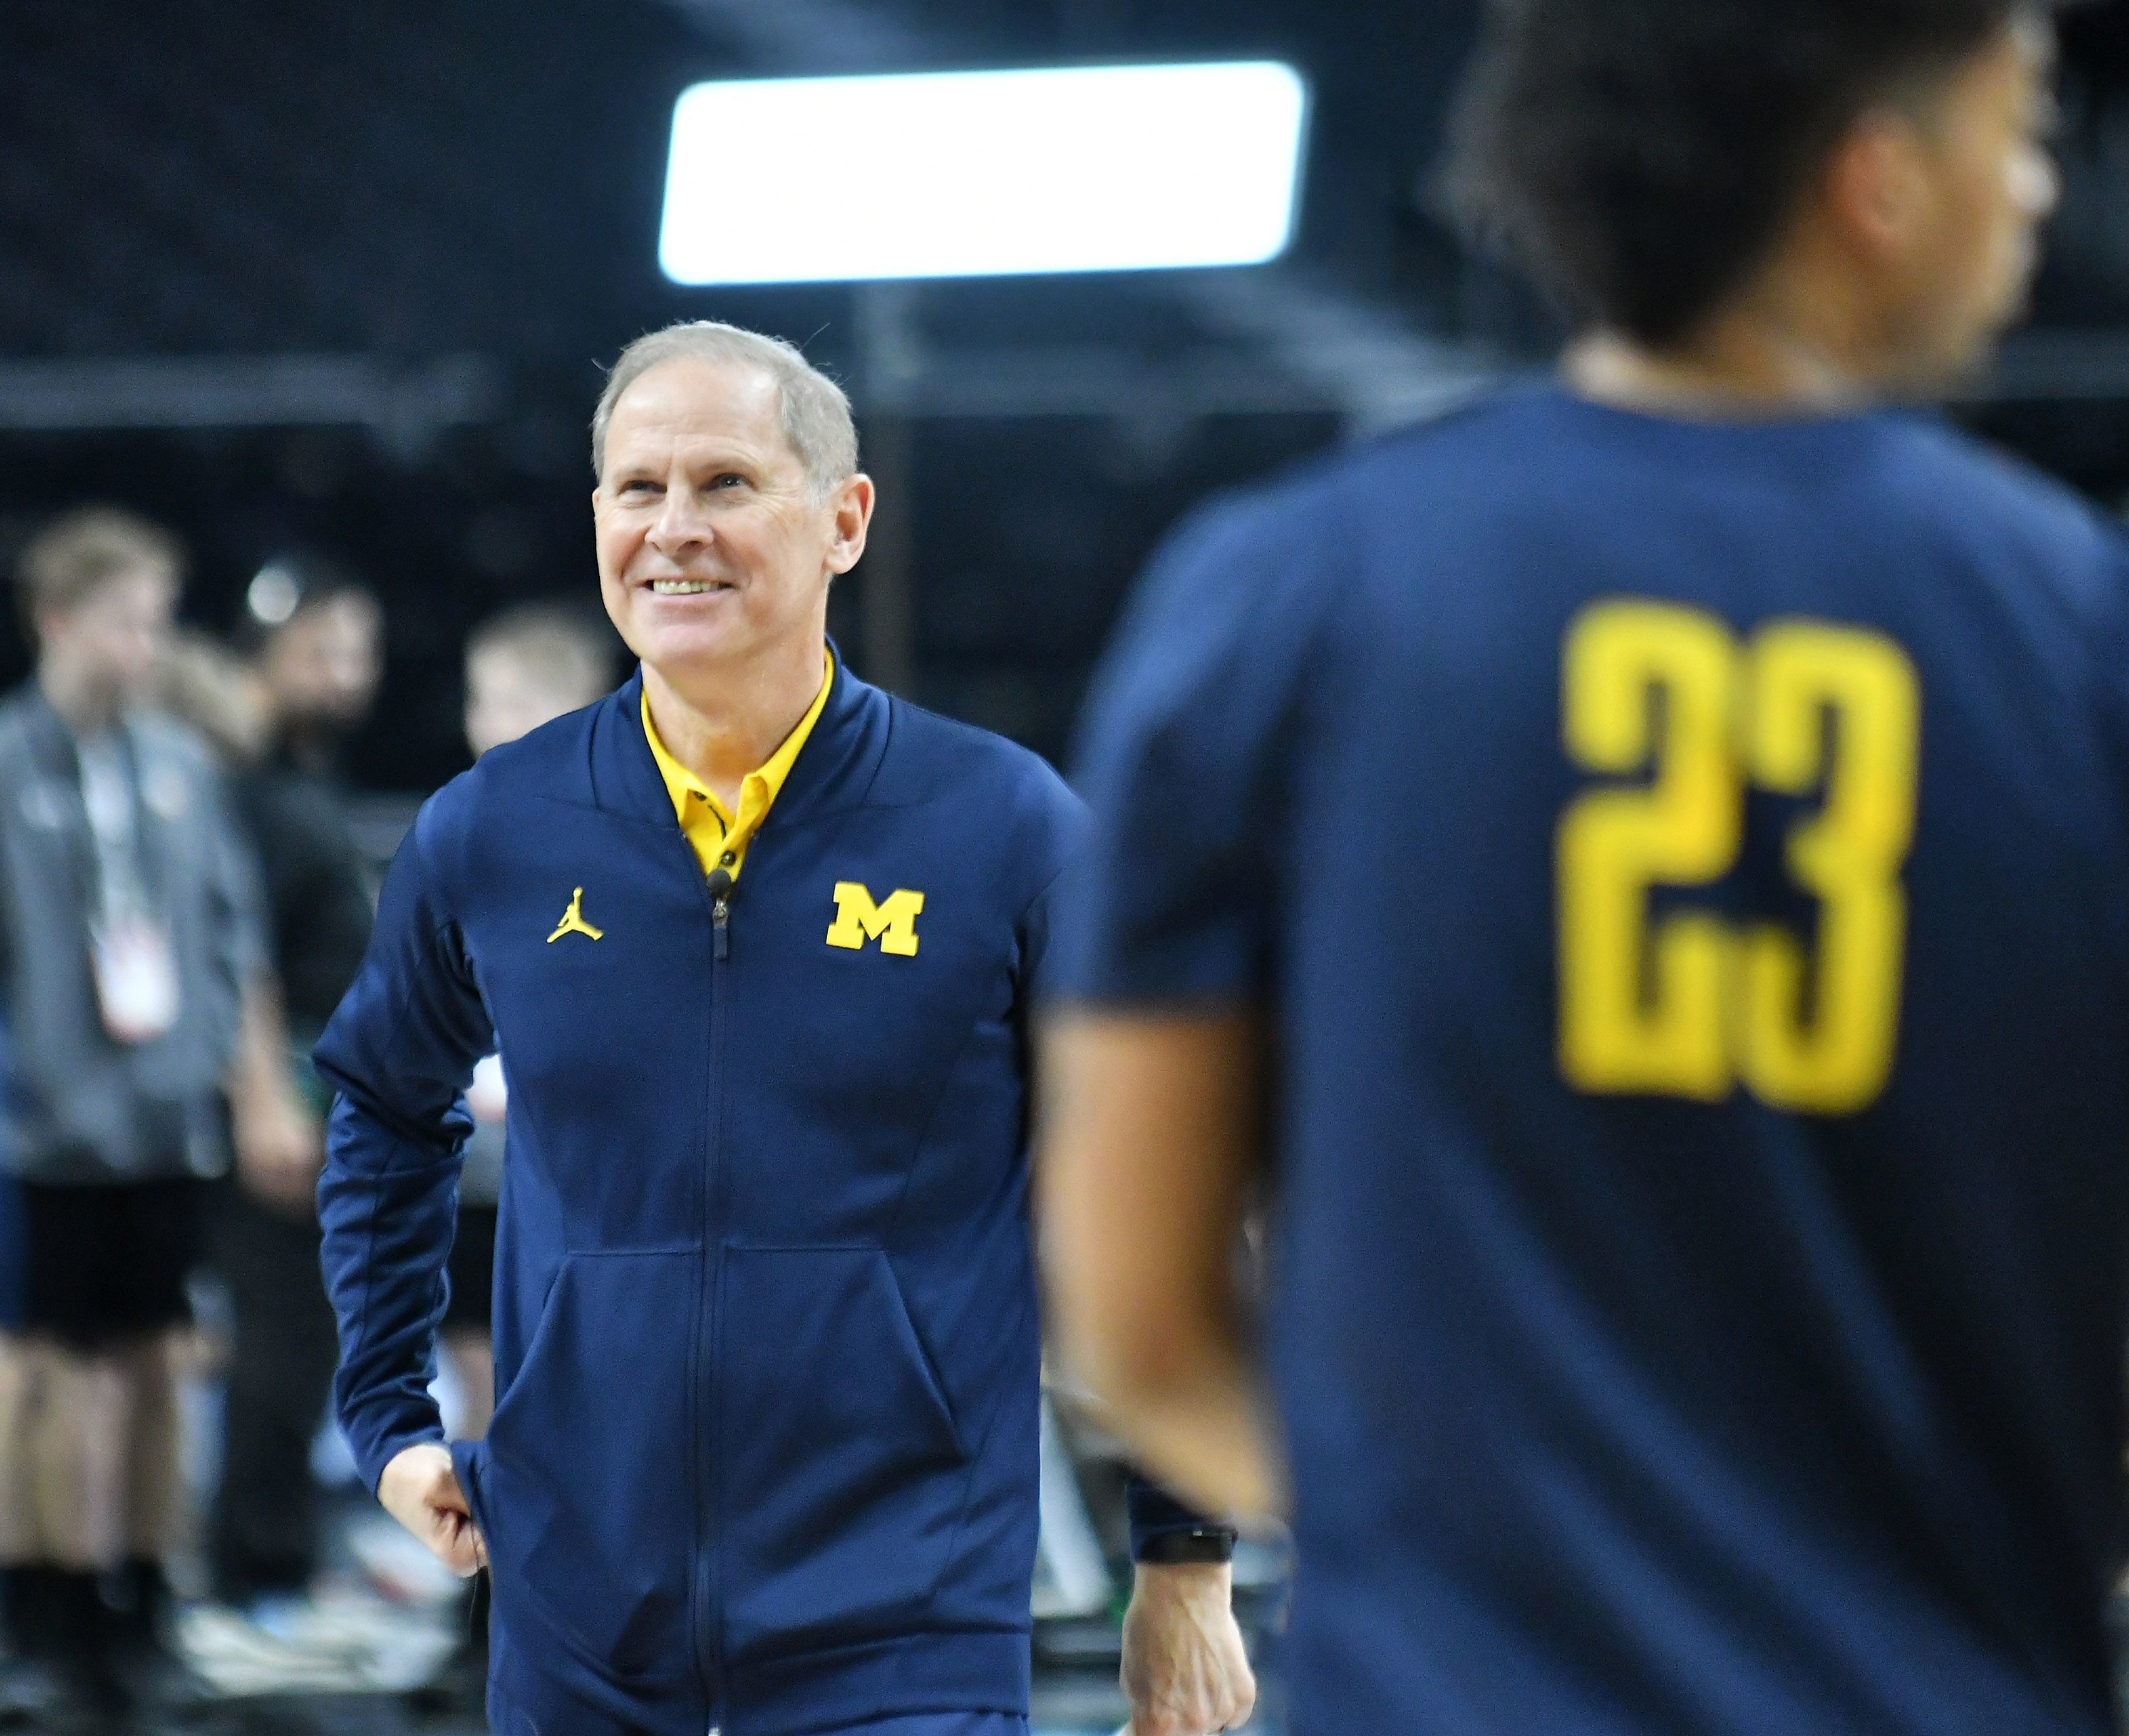 Michigan head basketball coach John Beilein's offseason included interest in the Pistons' heading coaching job and heart surgery.